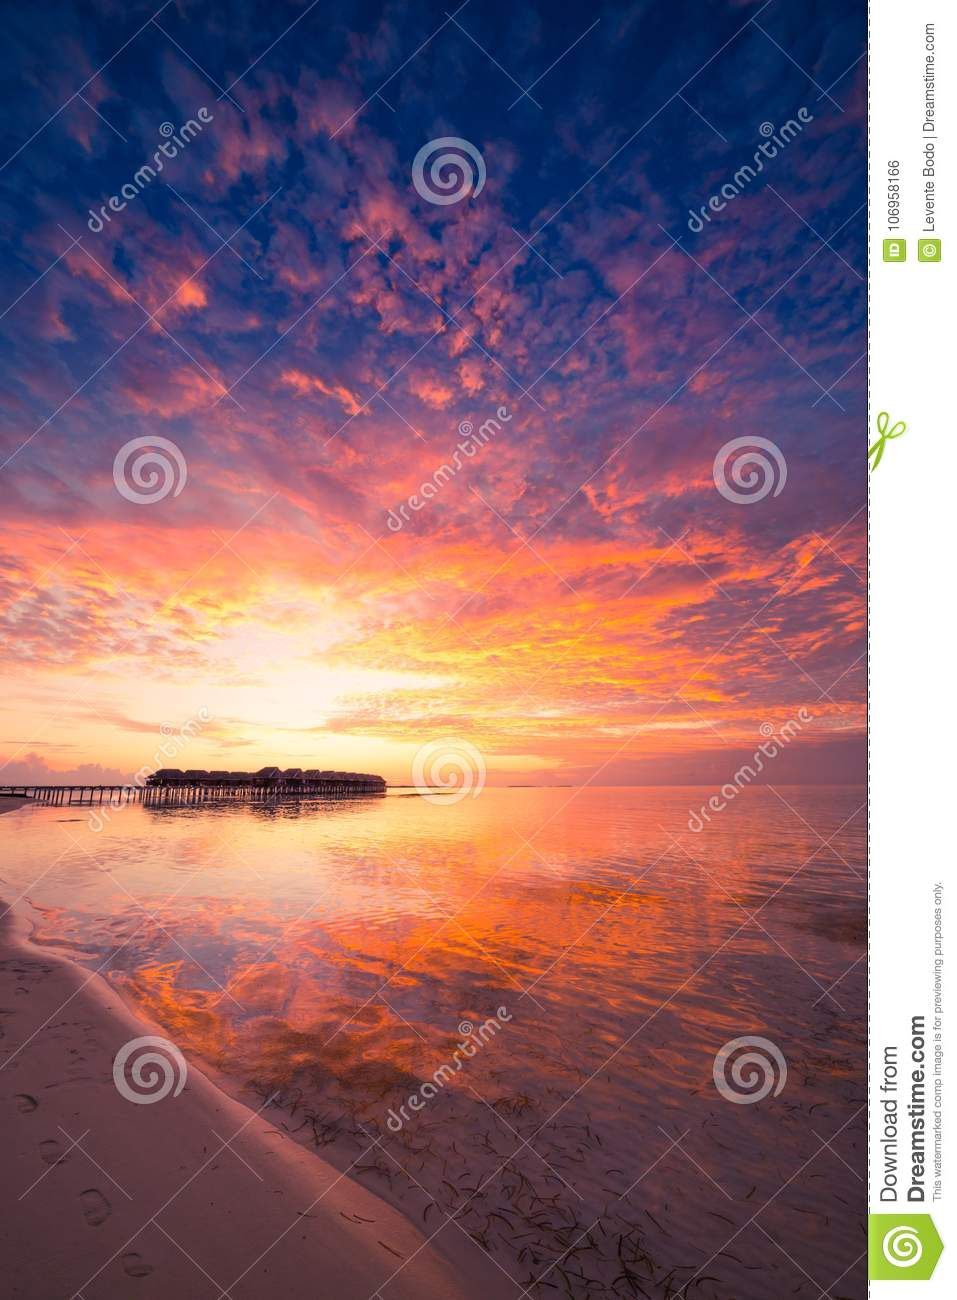 Download Amazing Tropical Beach Sunrise Or Sunset Landscape Luxury Water Villas And Mirror Reflection